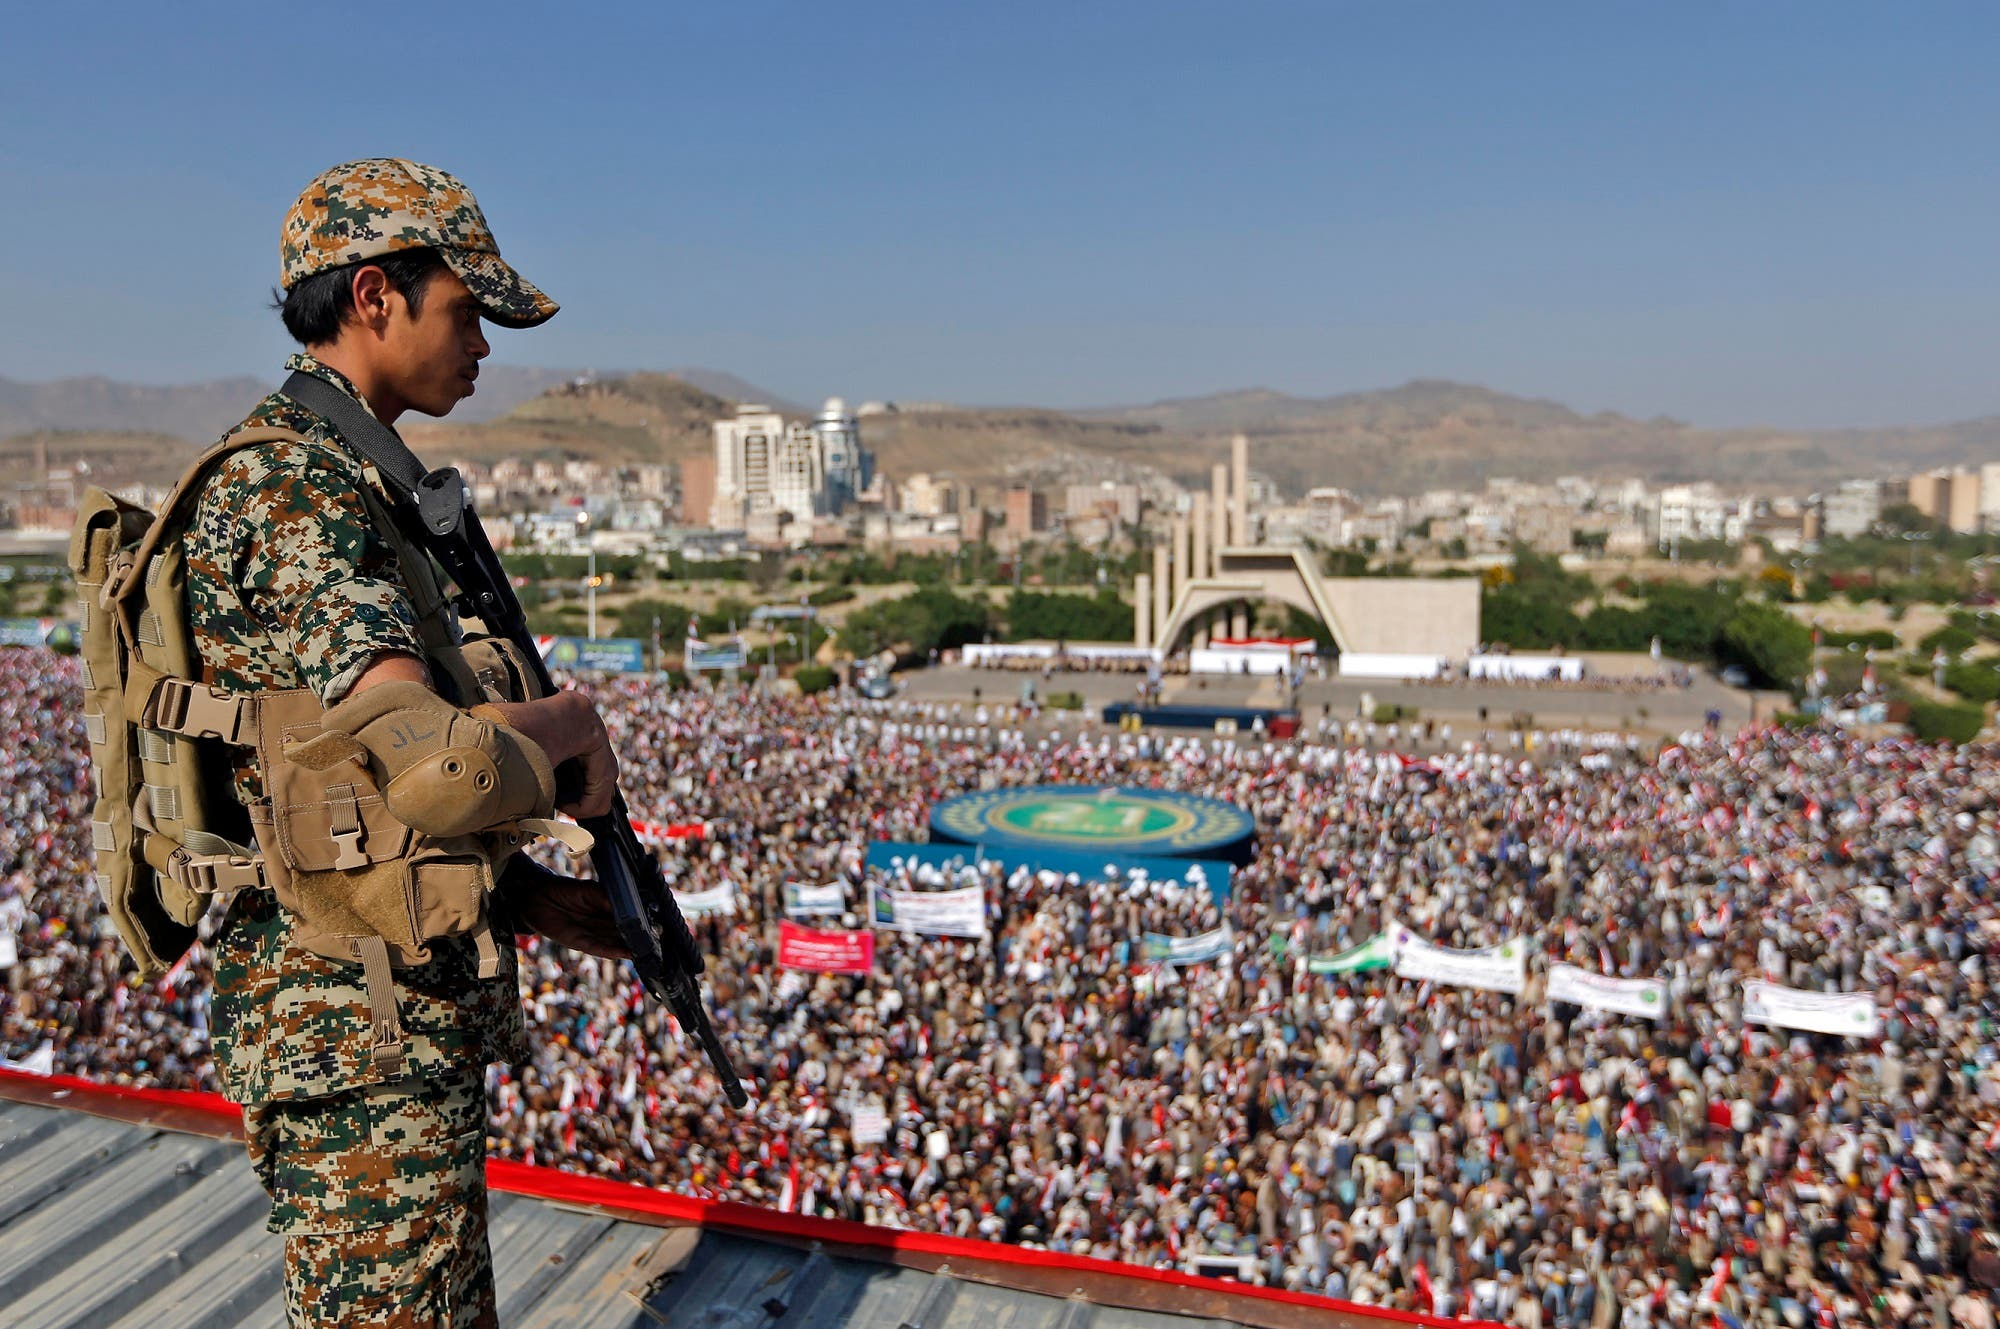 Supporters of Yemen's Iran-backed Houthi rebel movement gather in Sanaa on September 21, 2017 to mark the third anniversary of the rebel takeover. (AFP)